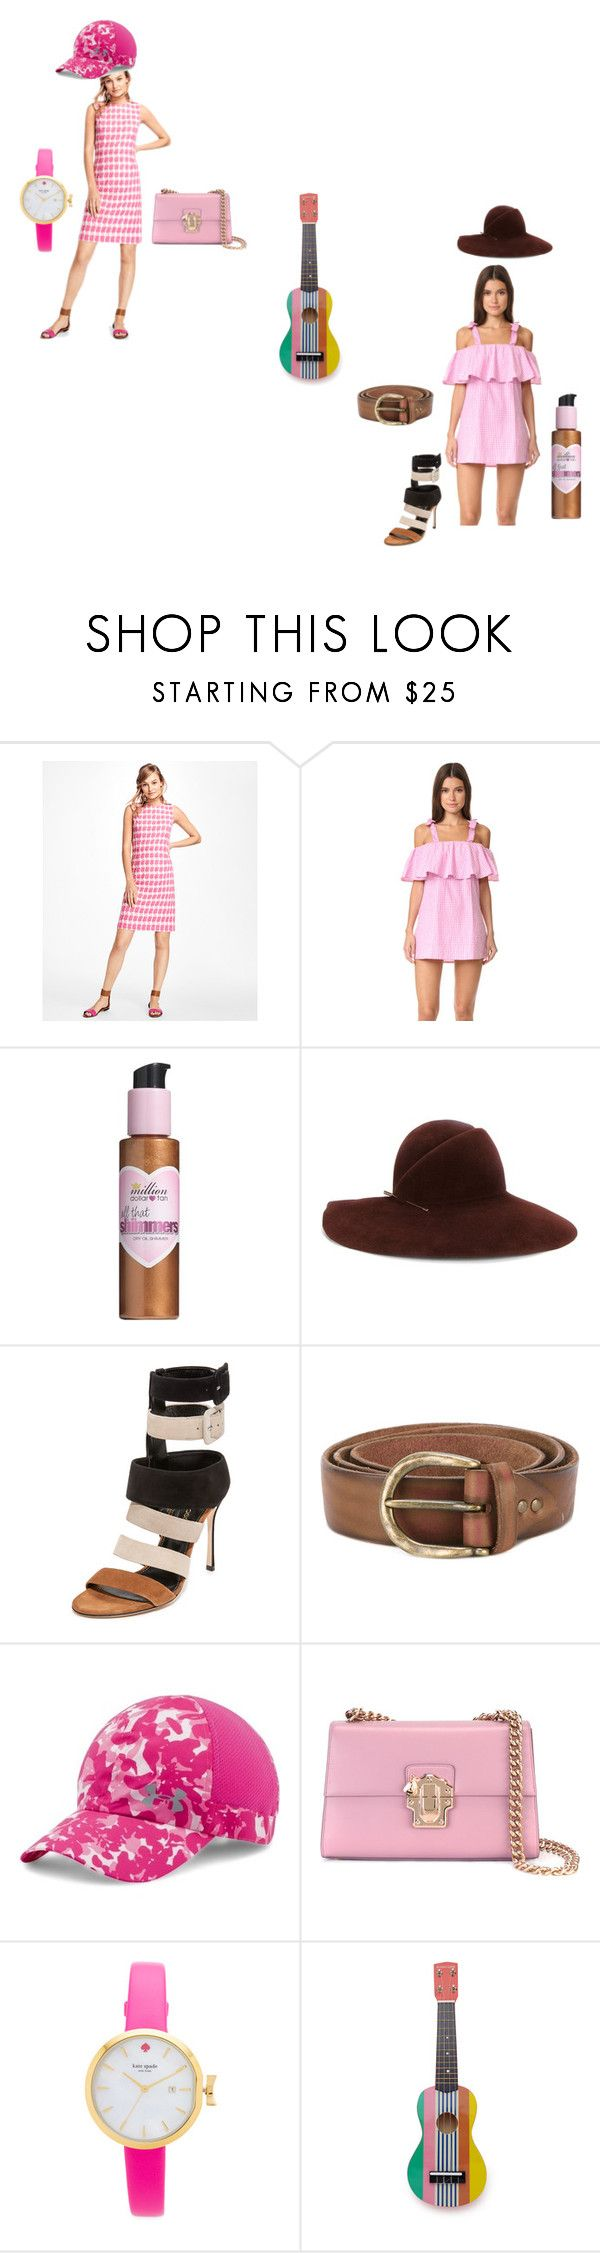 """Just Do It"" by ramakumari ❤ liked on Polyvore featuring Brooks Brothers, MLM, Million Dollar Tan, Eugenia Kim, Sergio Rossi, Erika Cavallini Semi-Couture, Under Armour, Dolce&Gabbana, Kate Spade and Sunnylife"